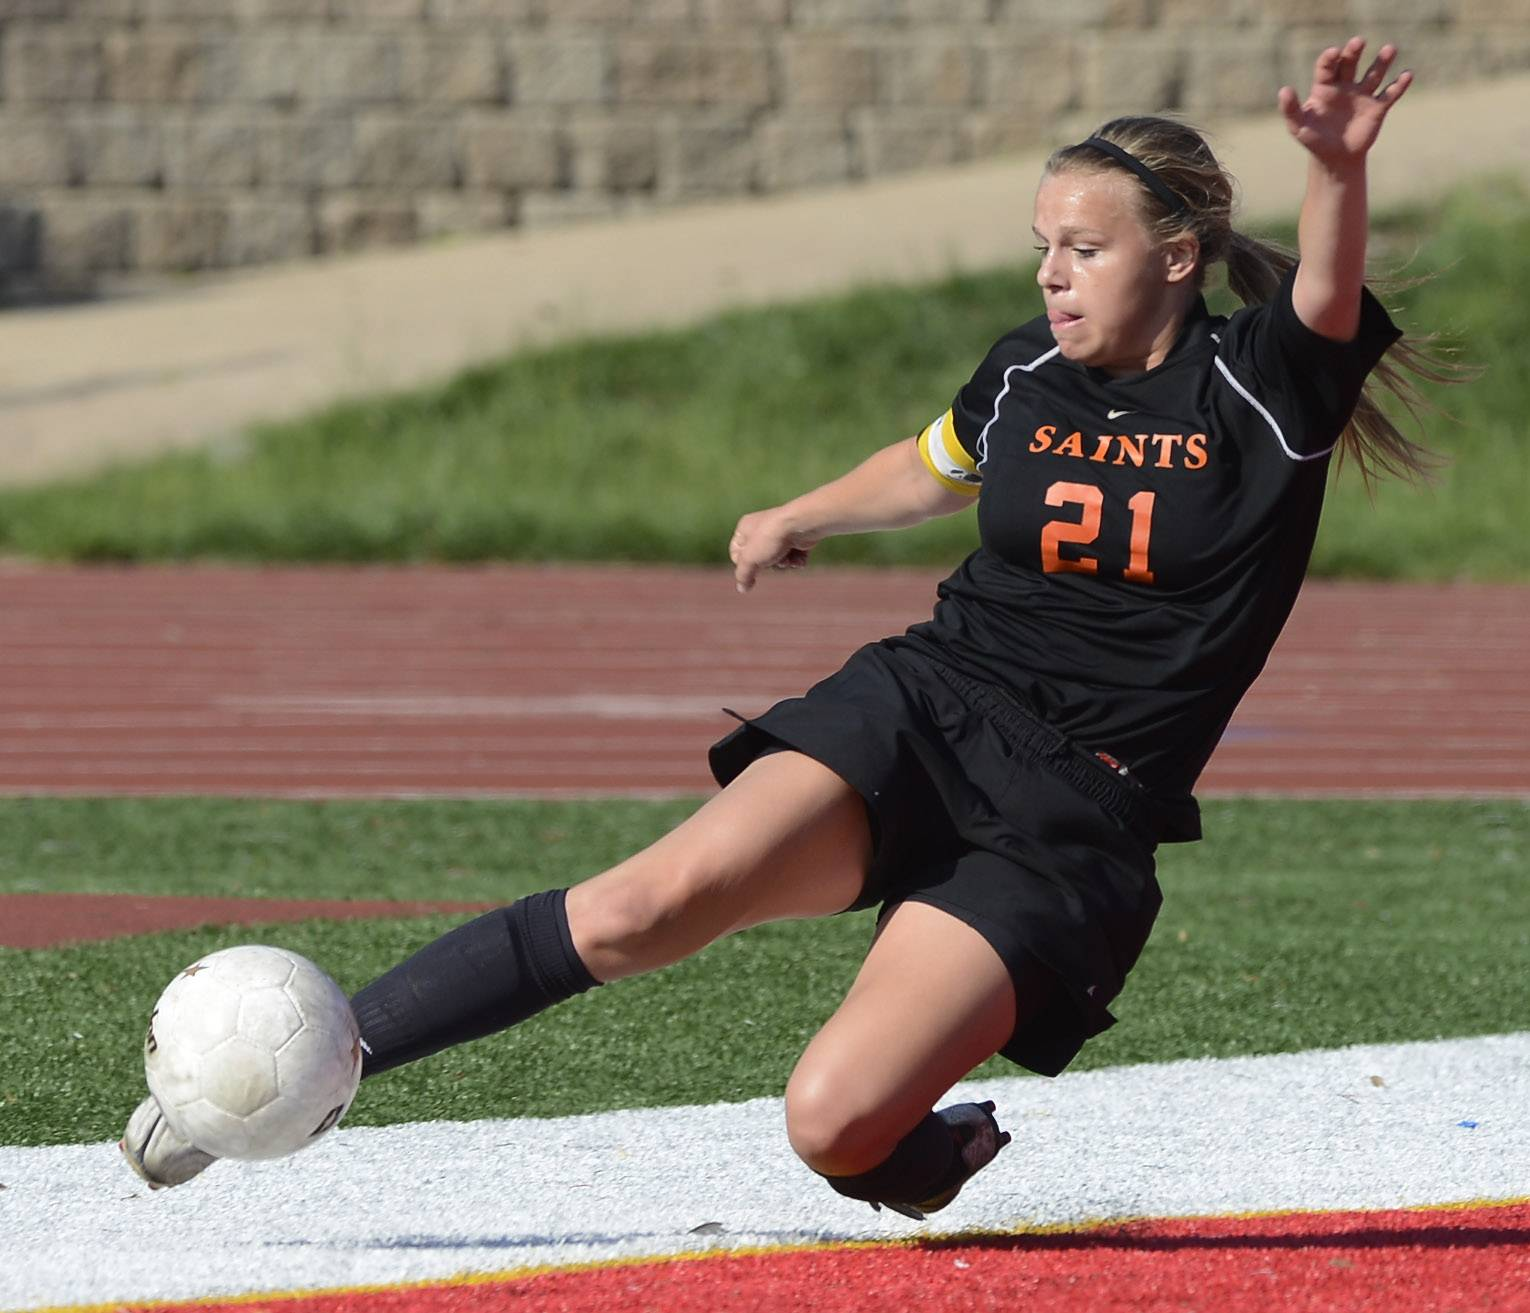 Amanda Hilton of St. Charles East tries to keep the ball in play during the girls soccer Class 3A state semifinal against Lincoln Way North at North Central College in Naperville Friday.